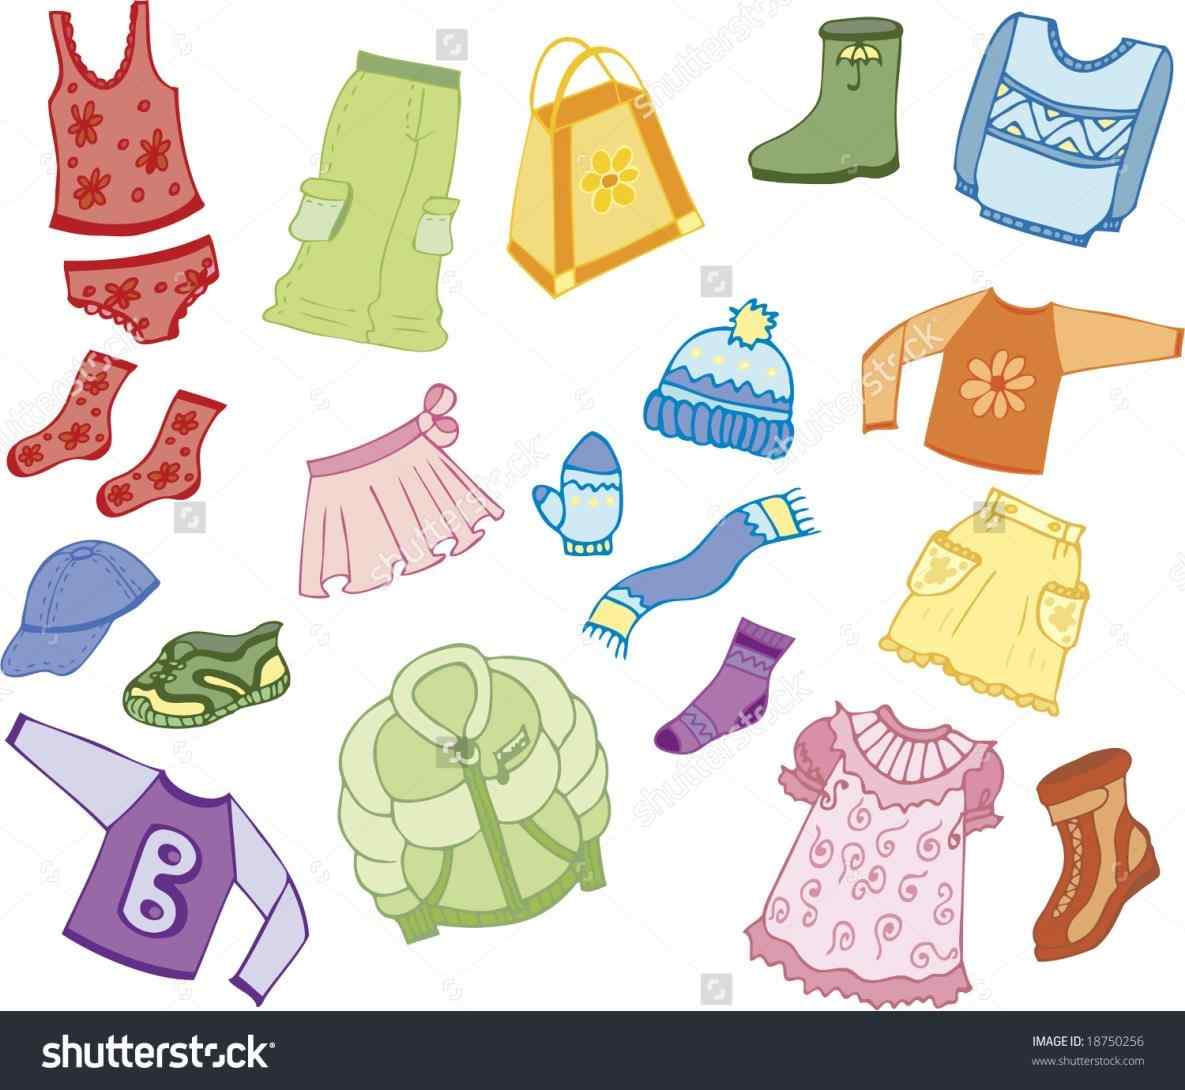 Kids clothes clipart 6 » Clipart Station.